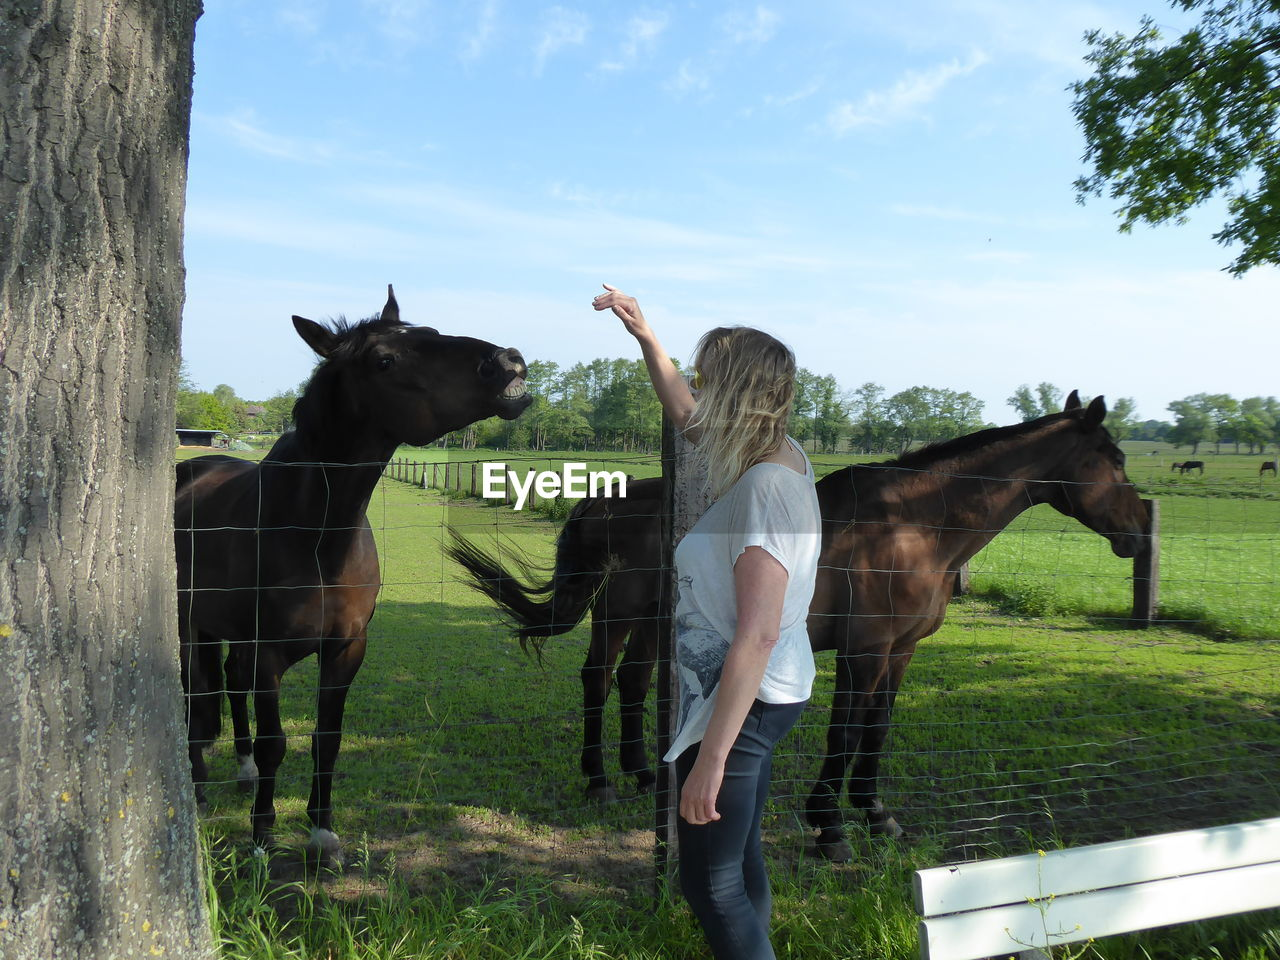 domestic animals, livestock, domestic, animal, mammal, animal themes, pets, horse, real people, vertebrate, sky, field, plant, animal wildlife, one person, group of animals, tree, leisure activity, standing, herbivorous, ranch, outdoors, human arm